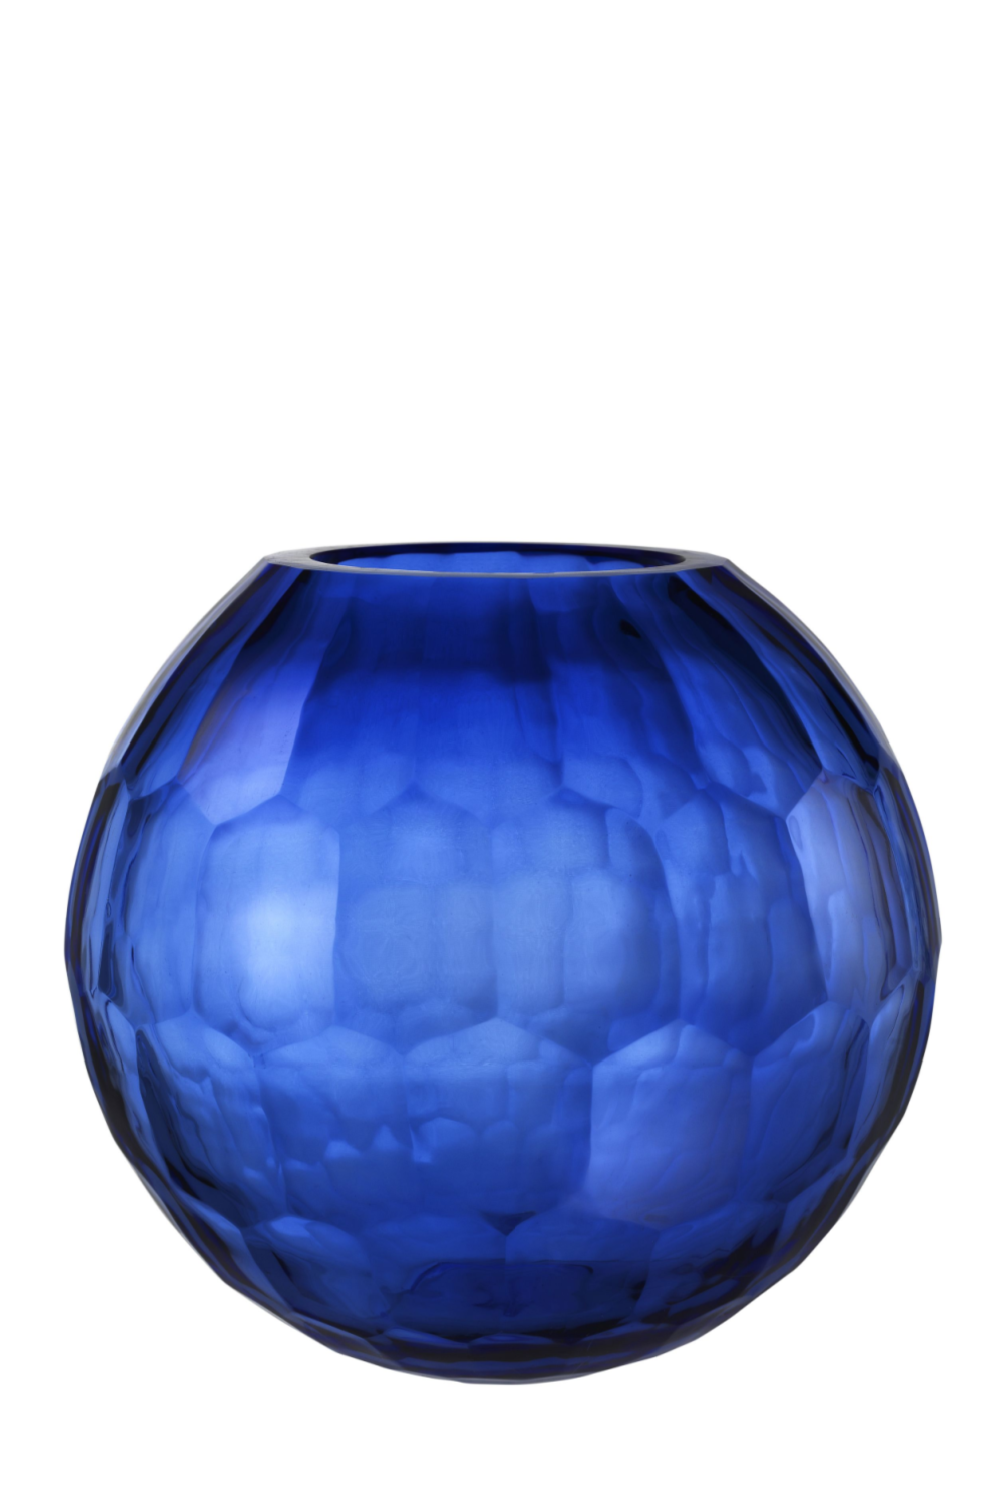 Blue Glass Vase - L | Eichholtz Feeza | OROA Modern & Luxury Furniture